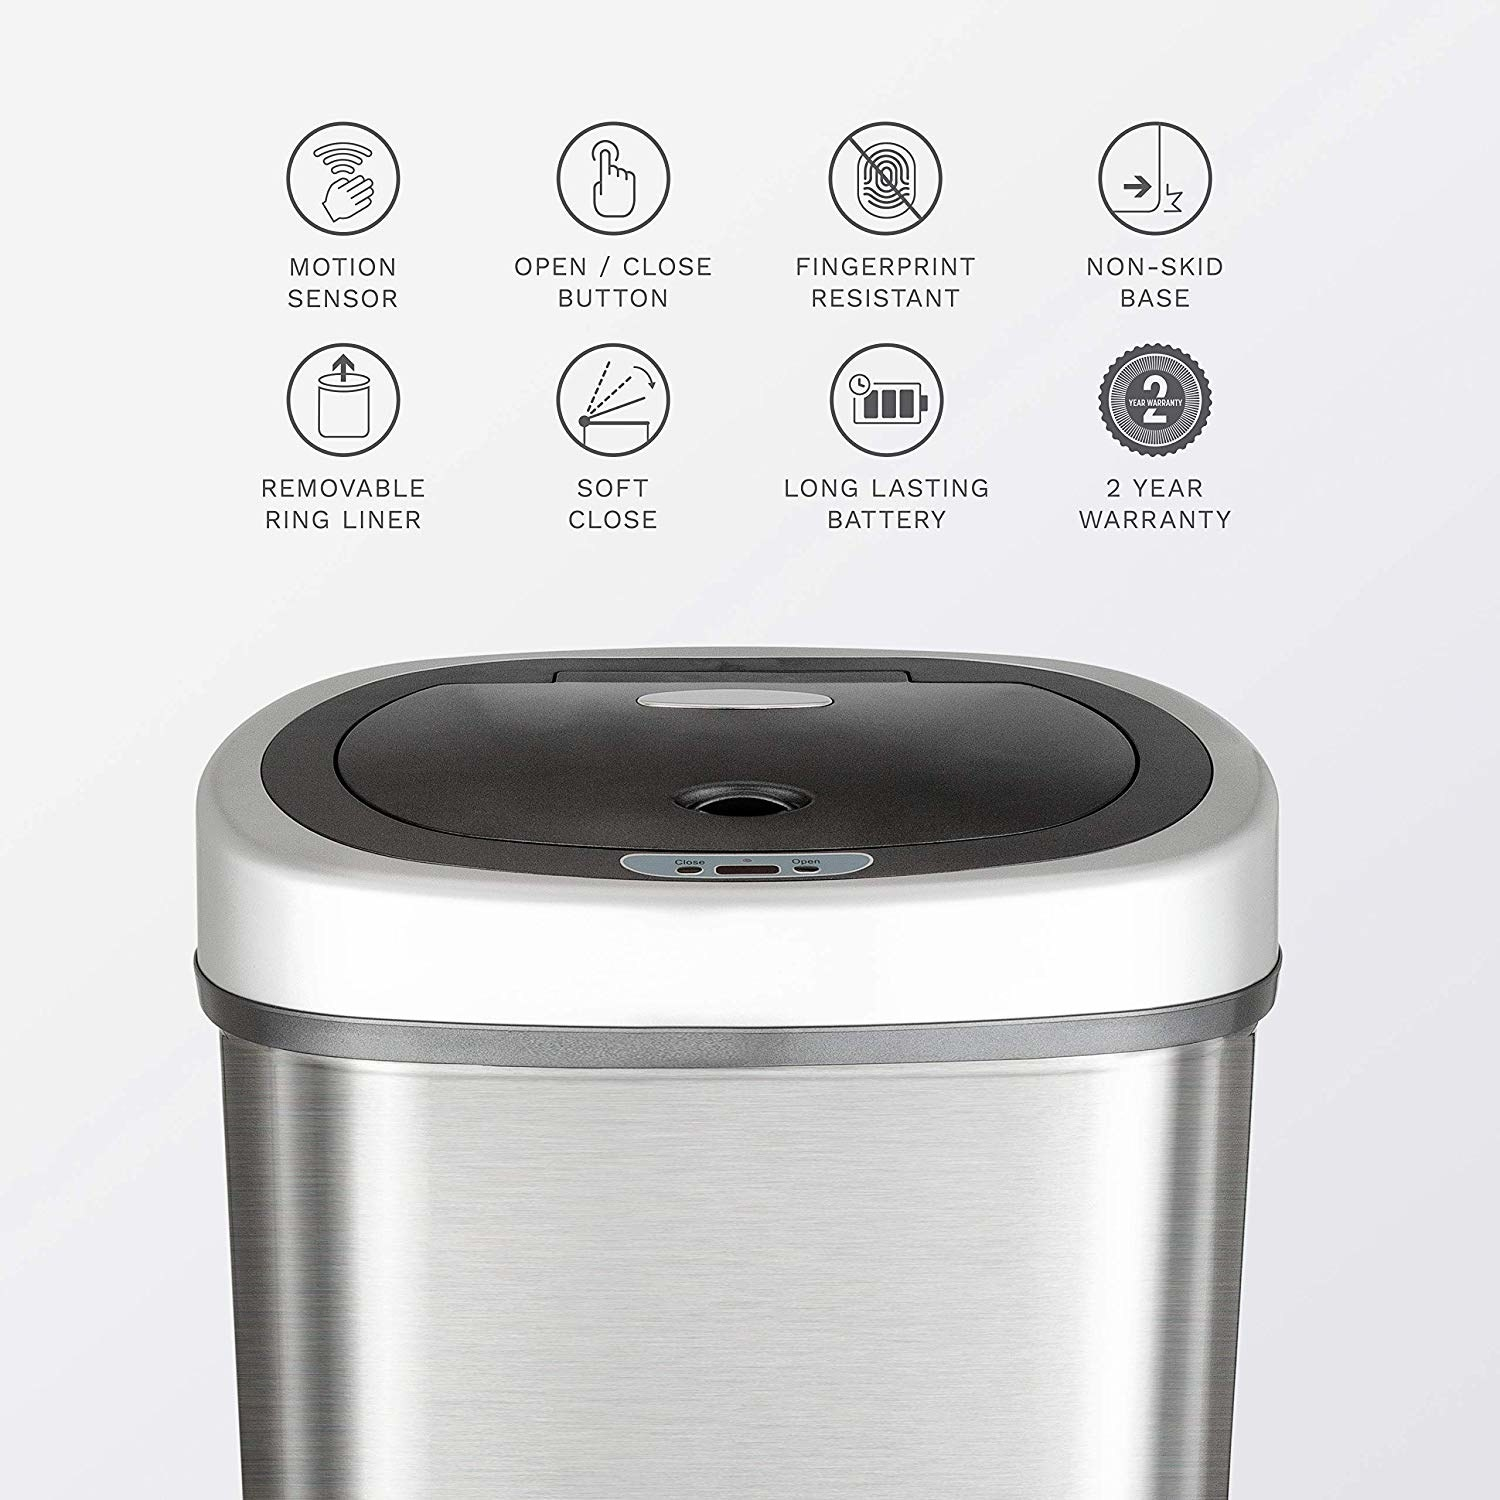 Trashcan with graphics describing what it does; including motion sensor tech, fingerprint resistance, soft close, long lasting battery, and two year warranty